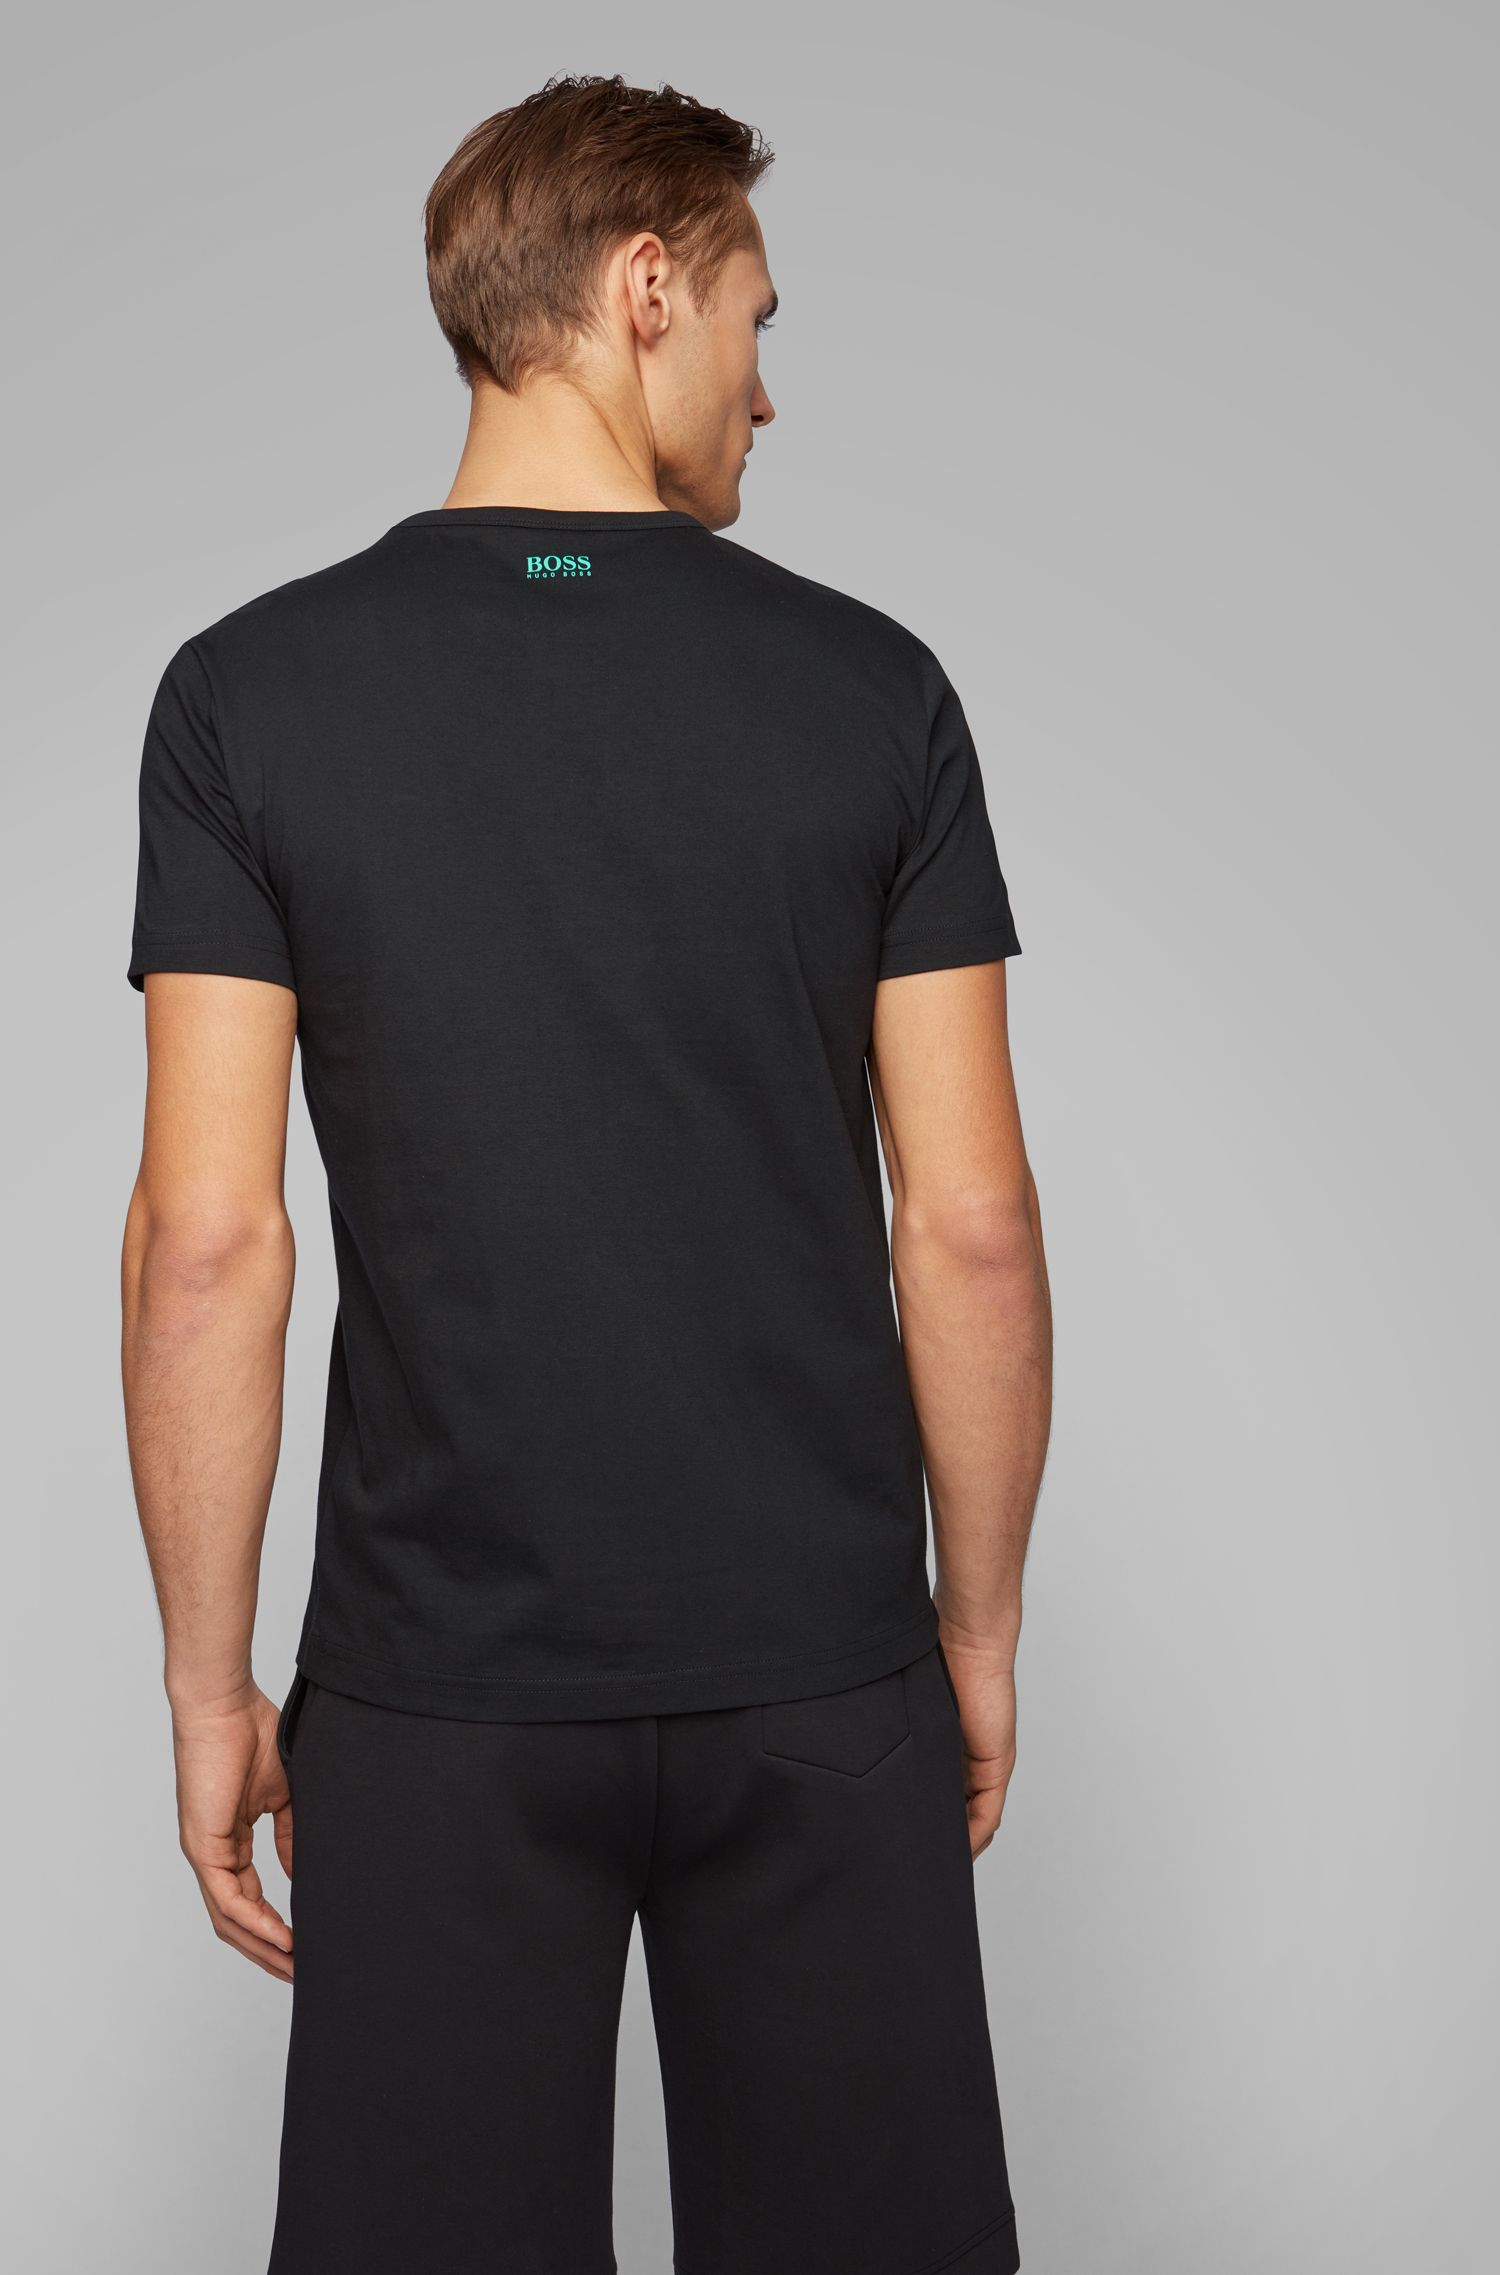 Regular-fit T-shirt in cotton with deconstructed logo artwork, Black